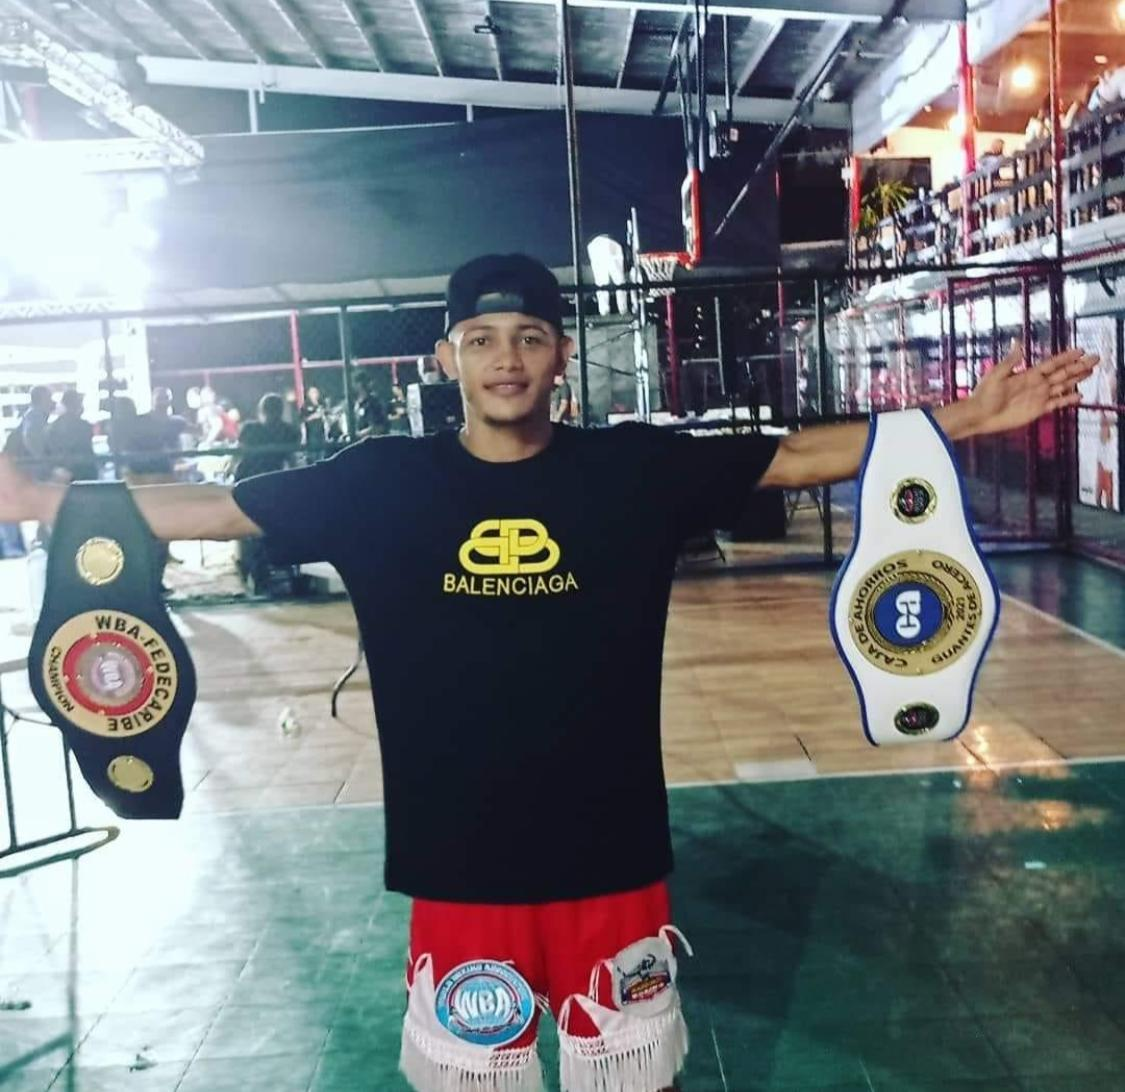 Galeano knocked out De La Rosa and is new WBA-Fedecaribe Champion